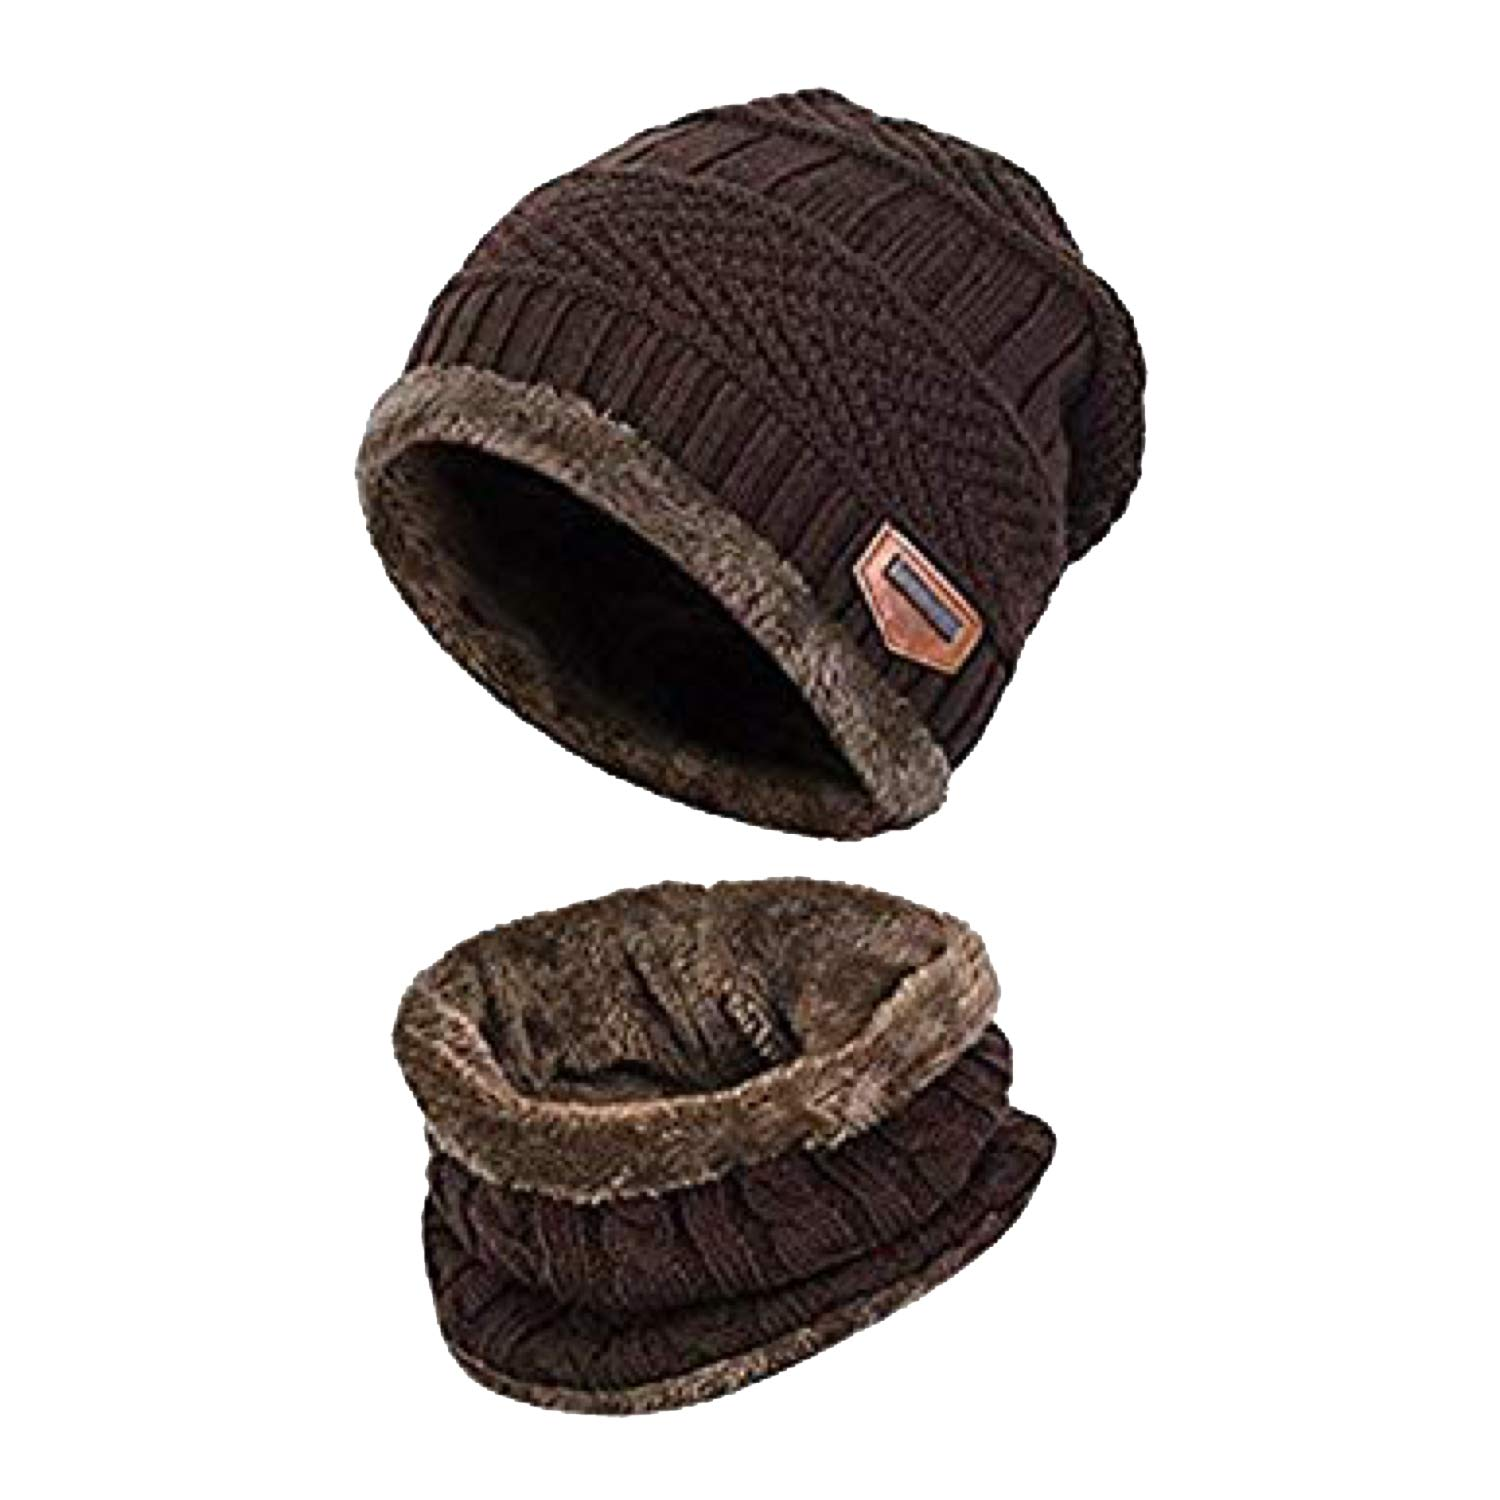 Unisex Men Women Knitted Fleece Beanie Hat and Circle Scarf Snood Set Warm  Soft and Comfortable (Brown)  Amazon.co.uk  Clothing 5af9c81fffe